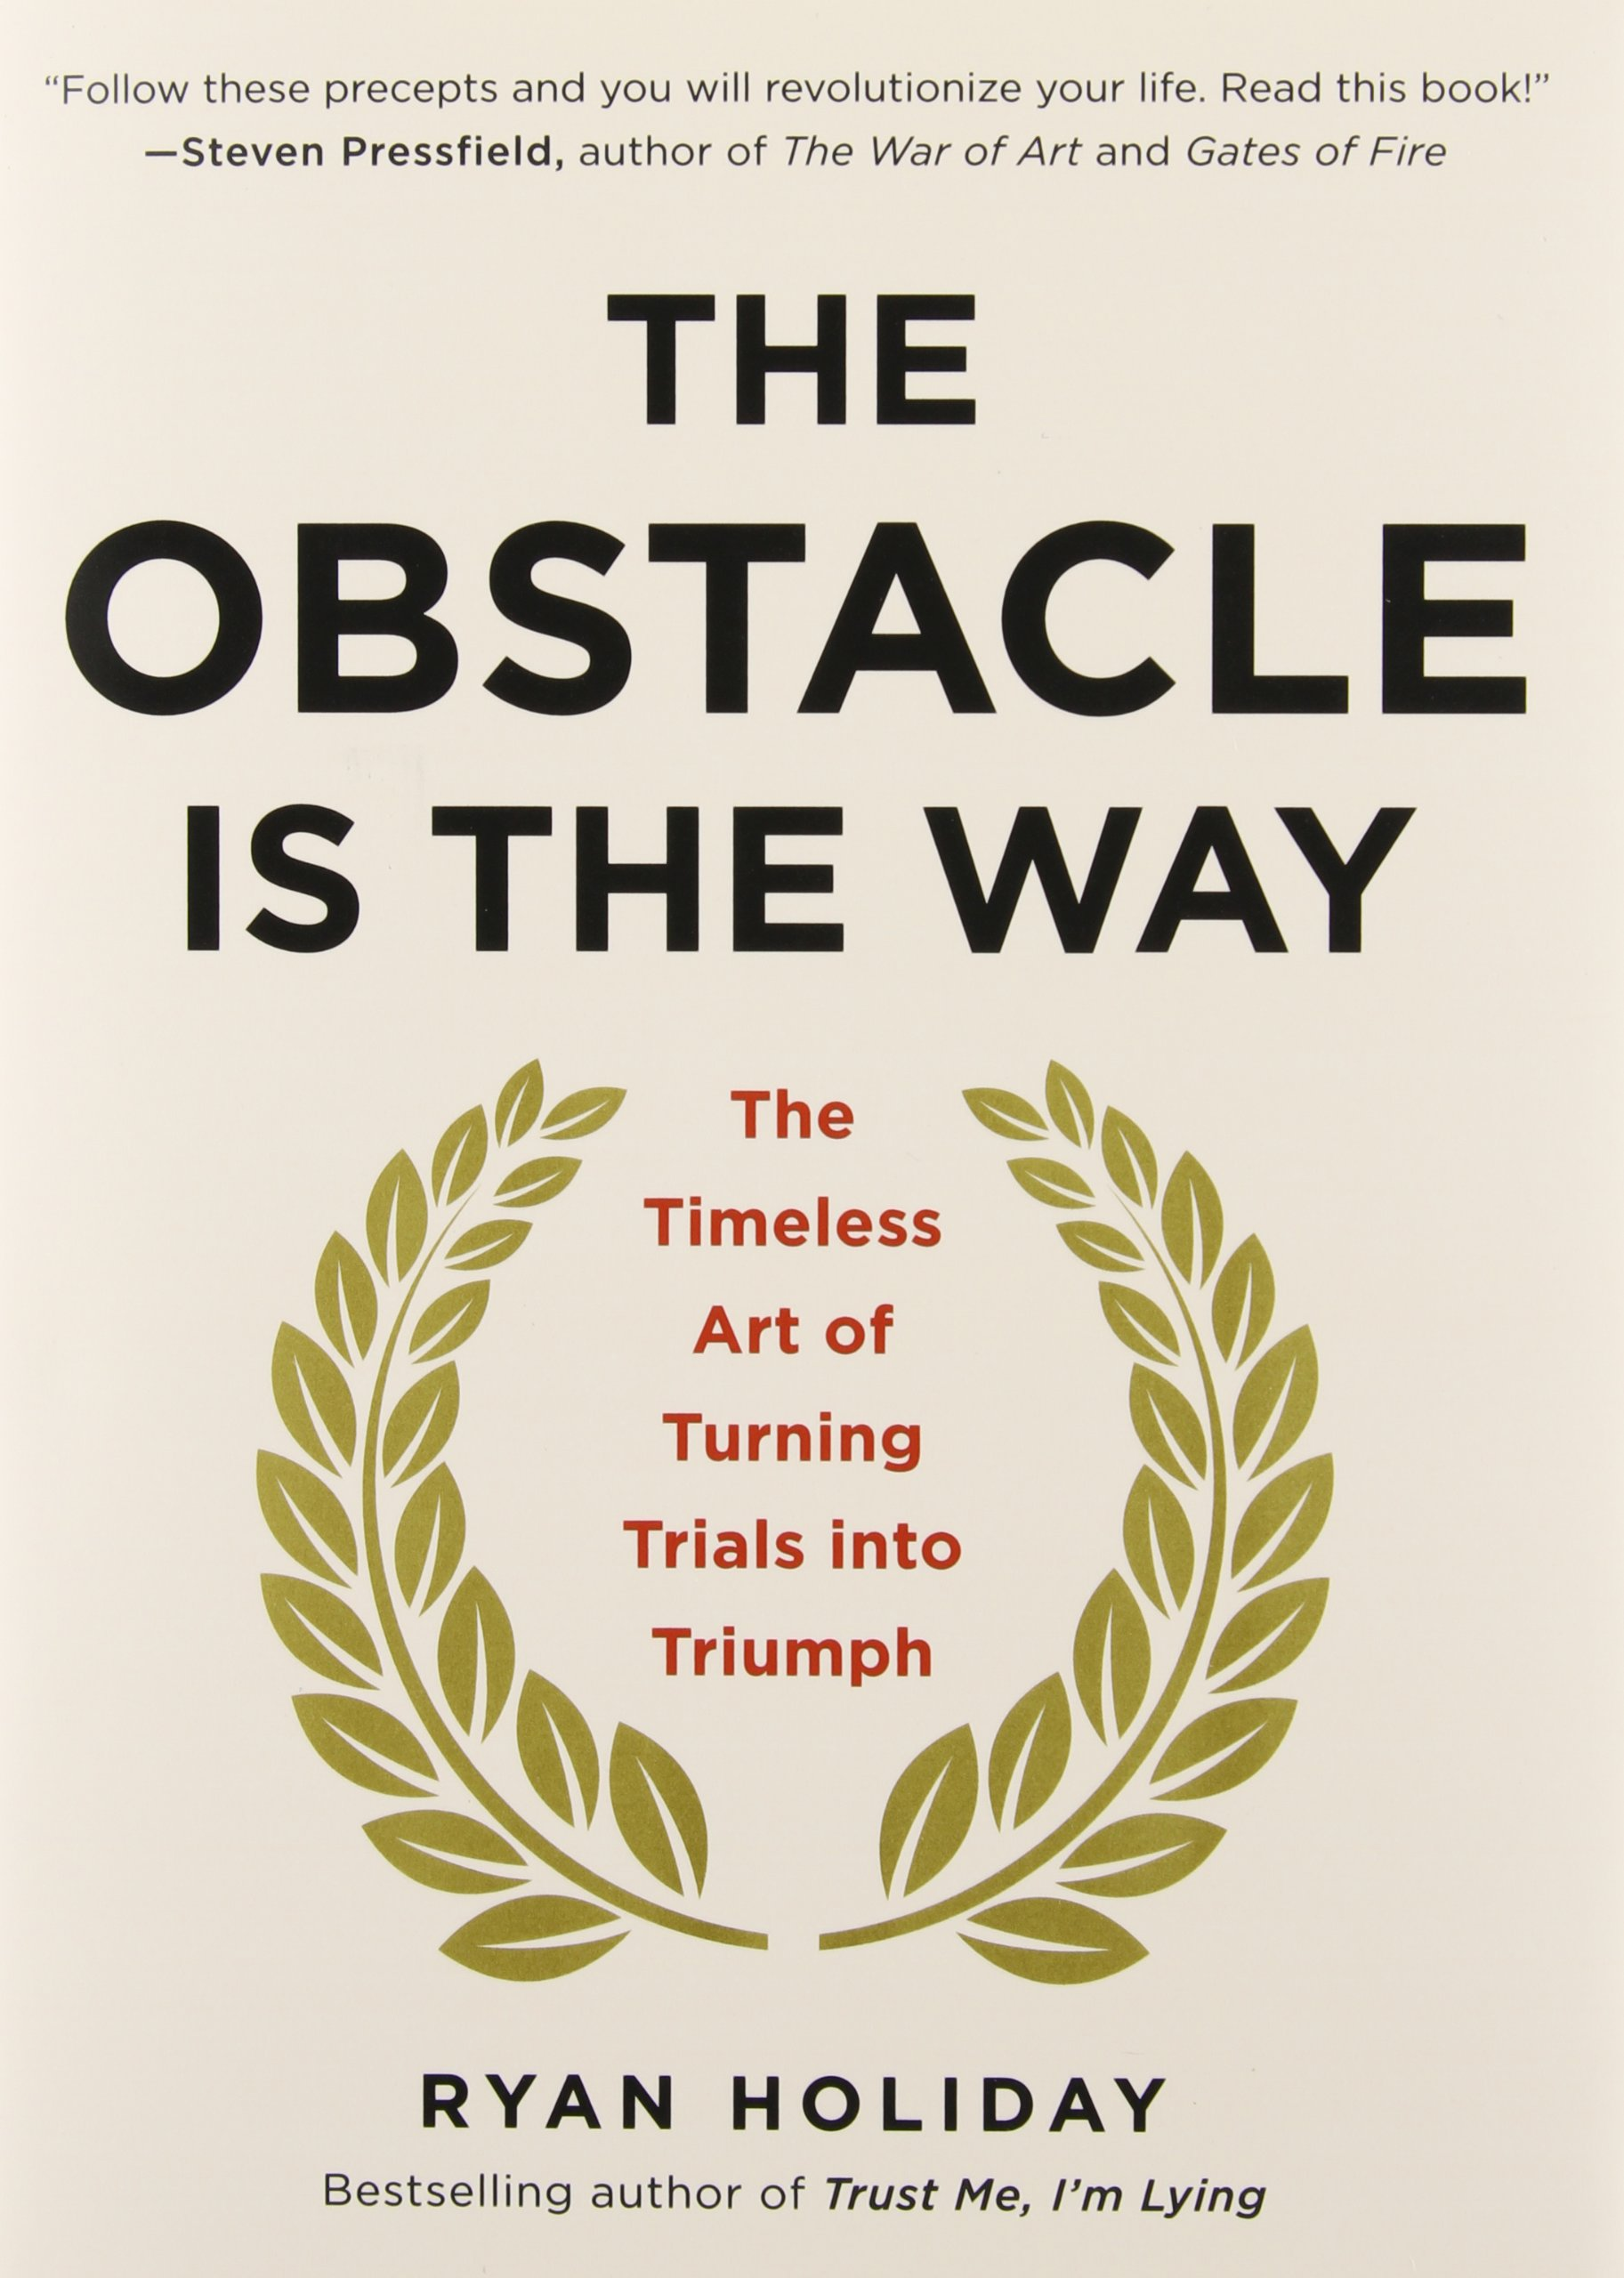 The Obstacle Is the Way (Ryan Holiday)